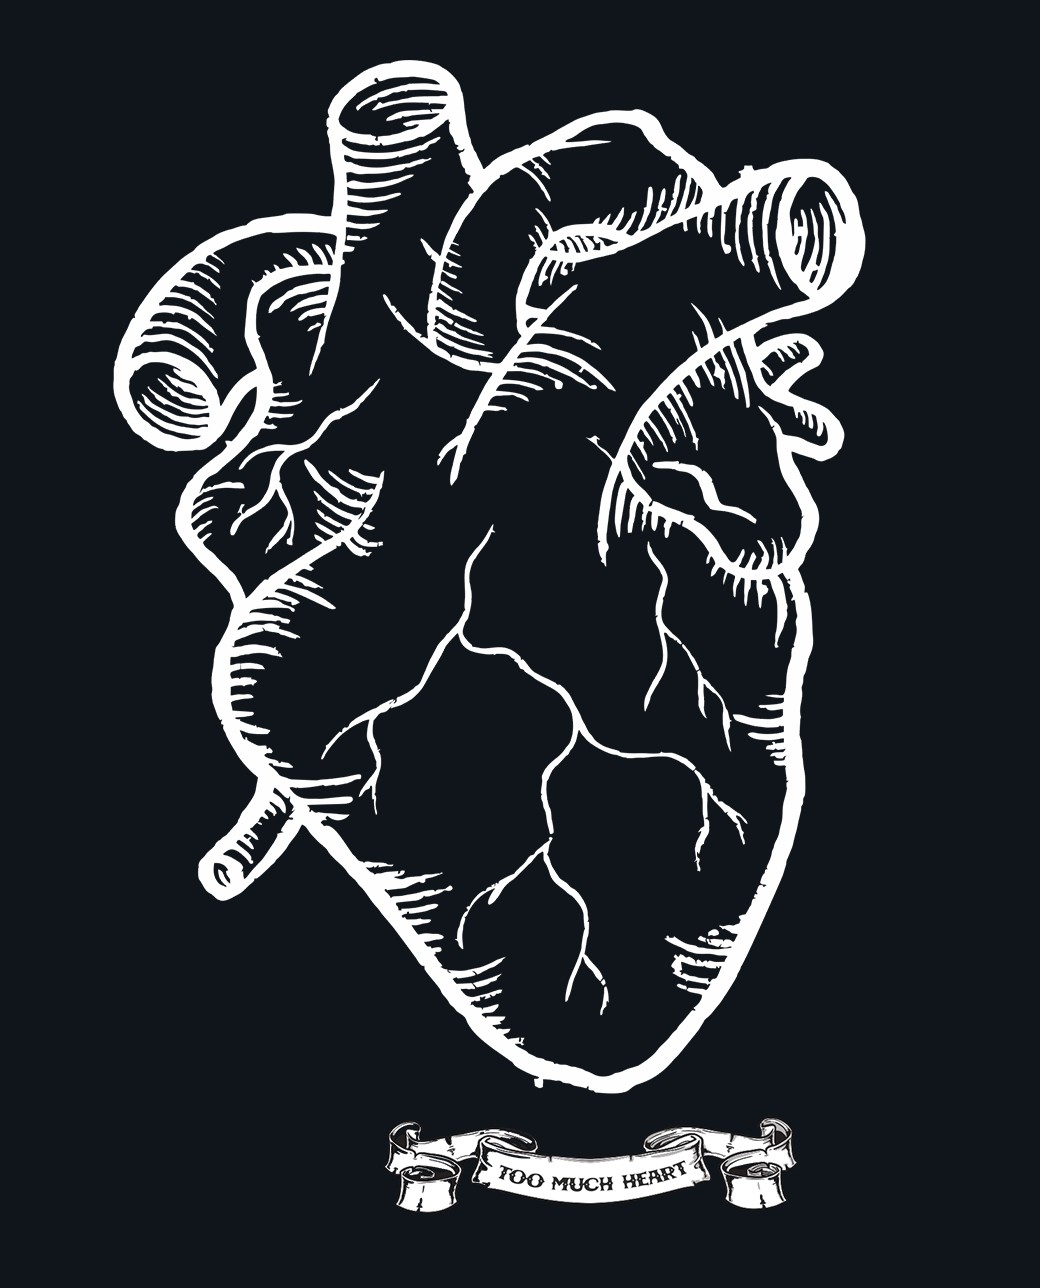 TOO MUCH HEART